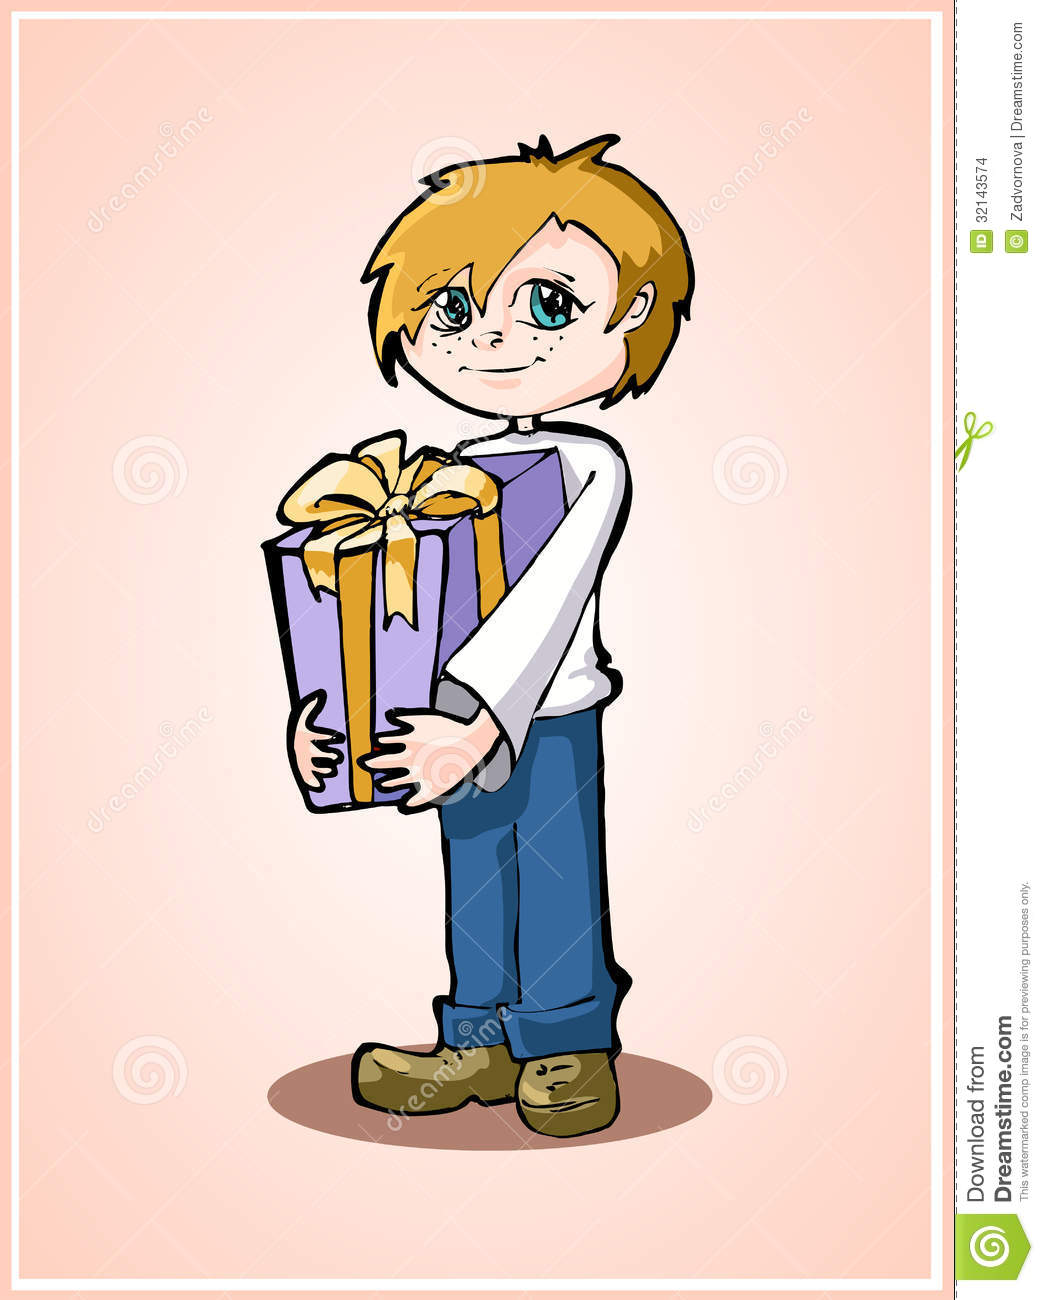 ... boy standing clip art displaying 18 images for boy standing clip art